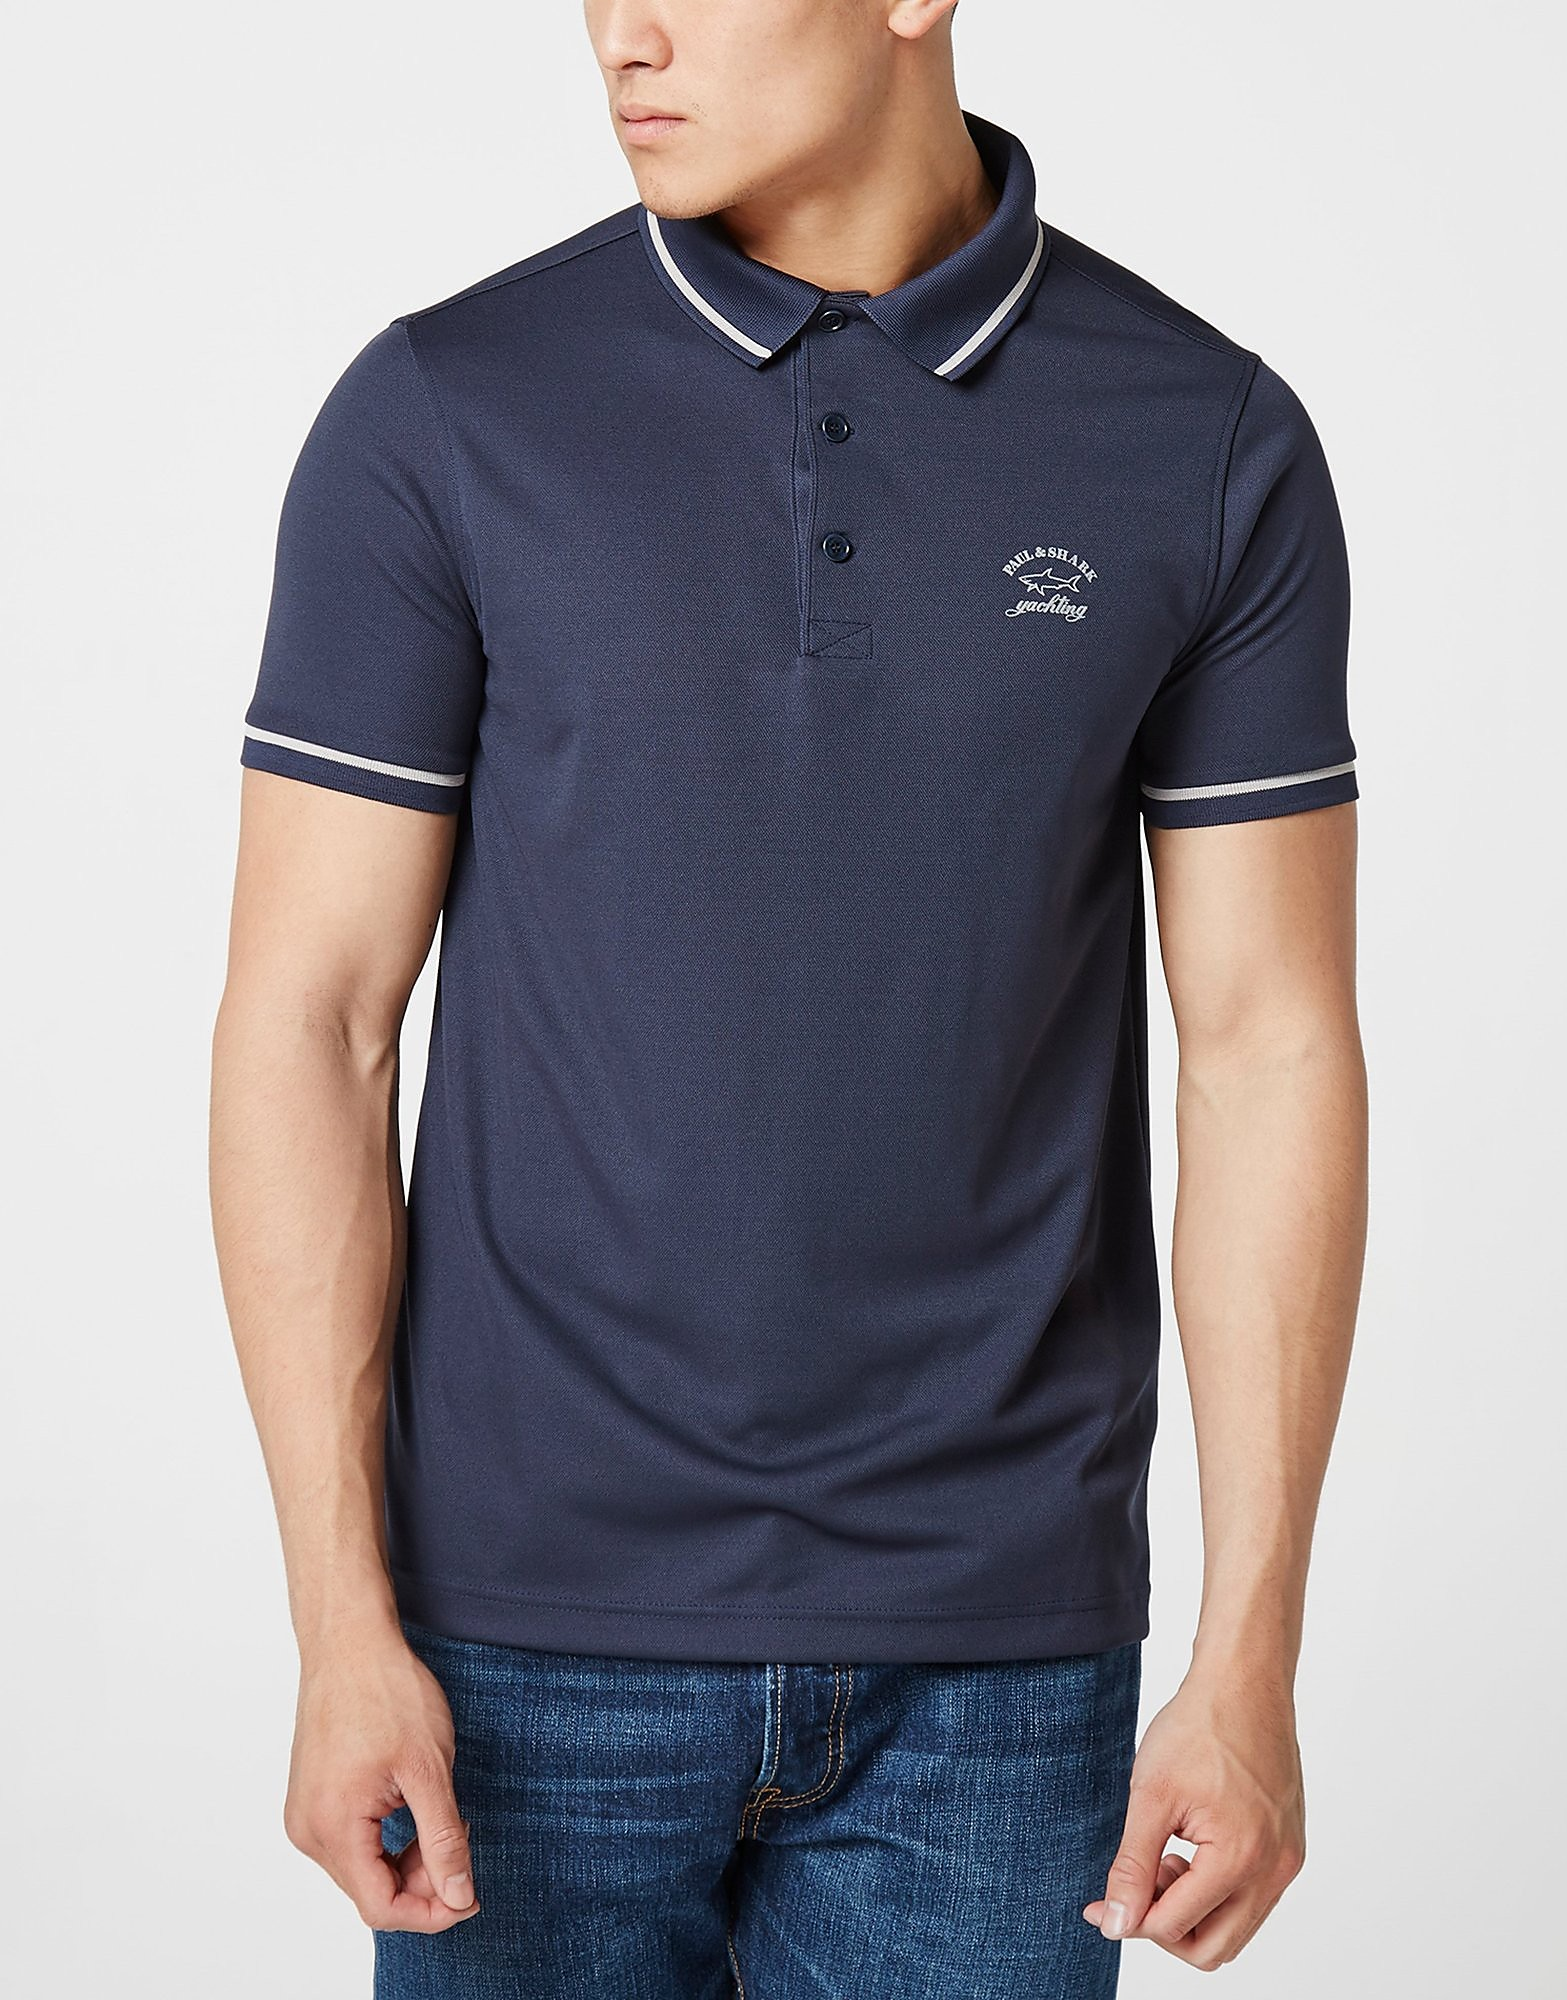 Paul and Shark Tip Birdeye Polo Shirt